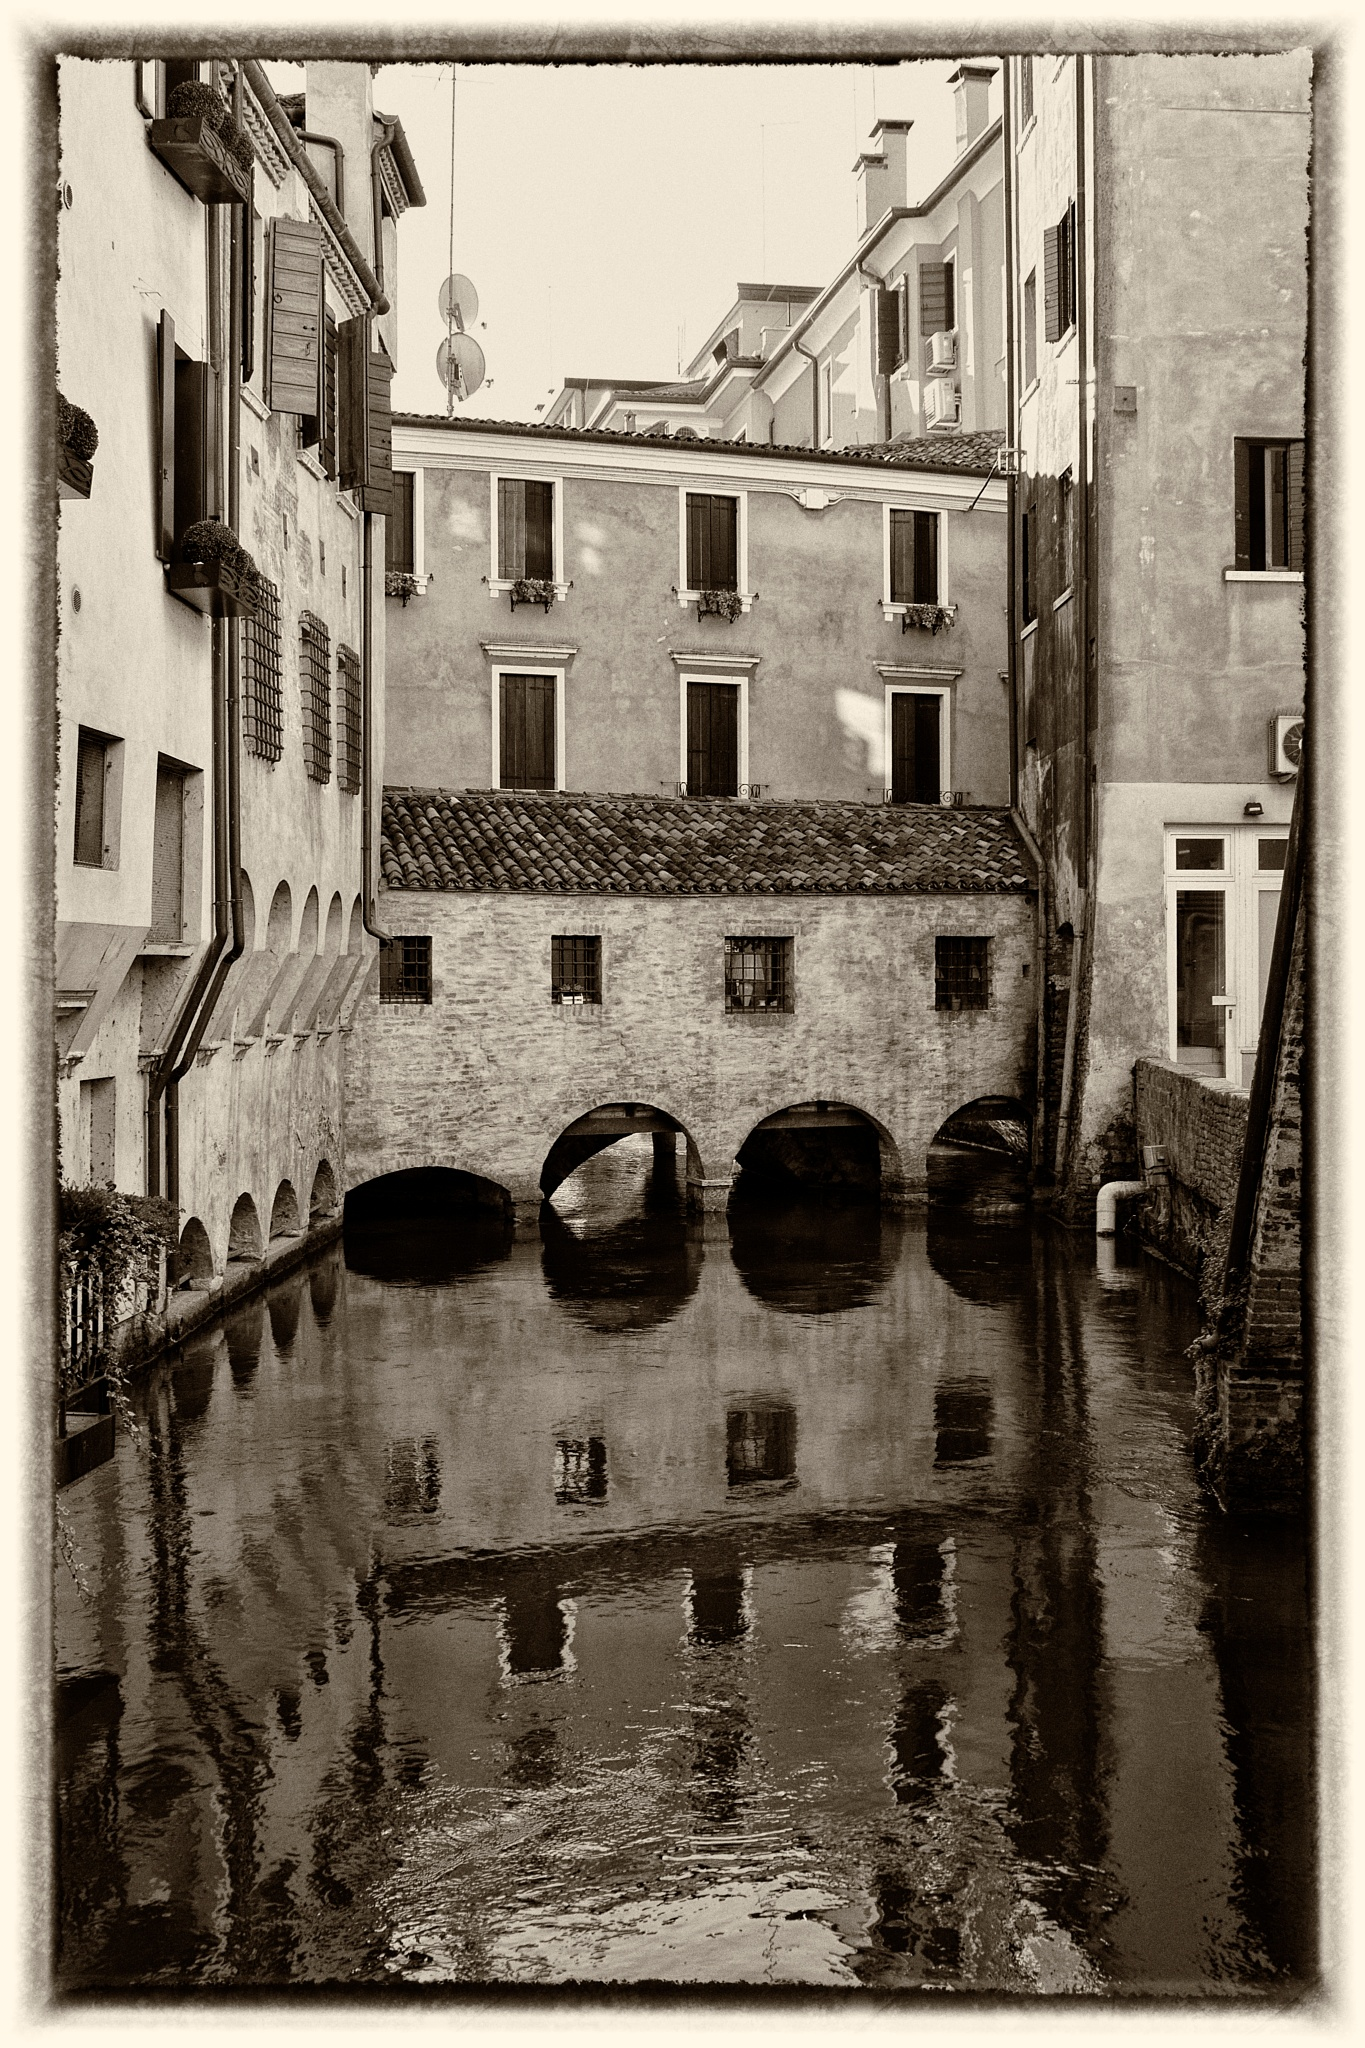 Treviso by Mkorho